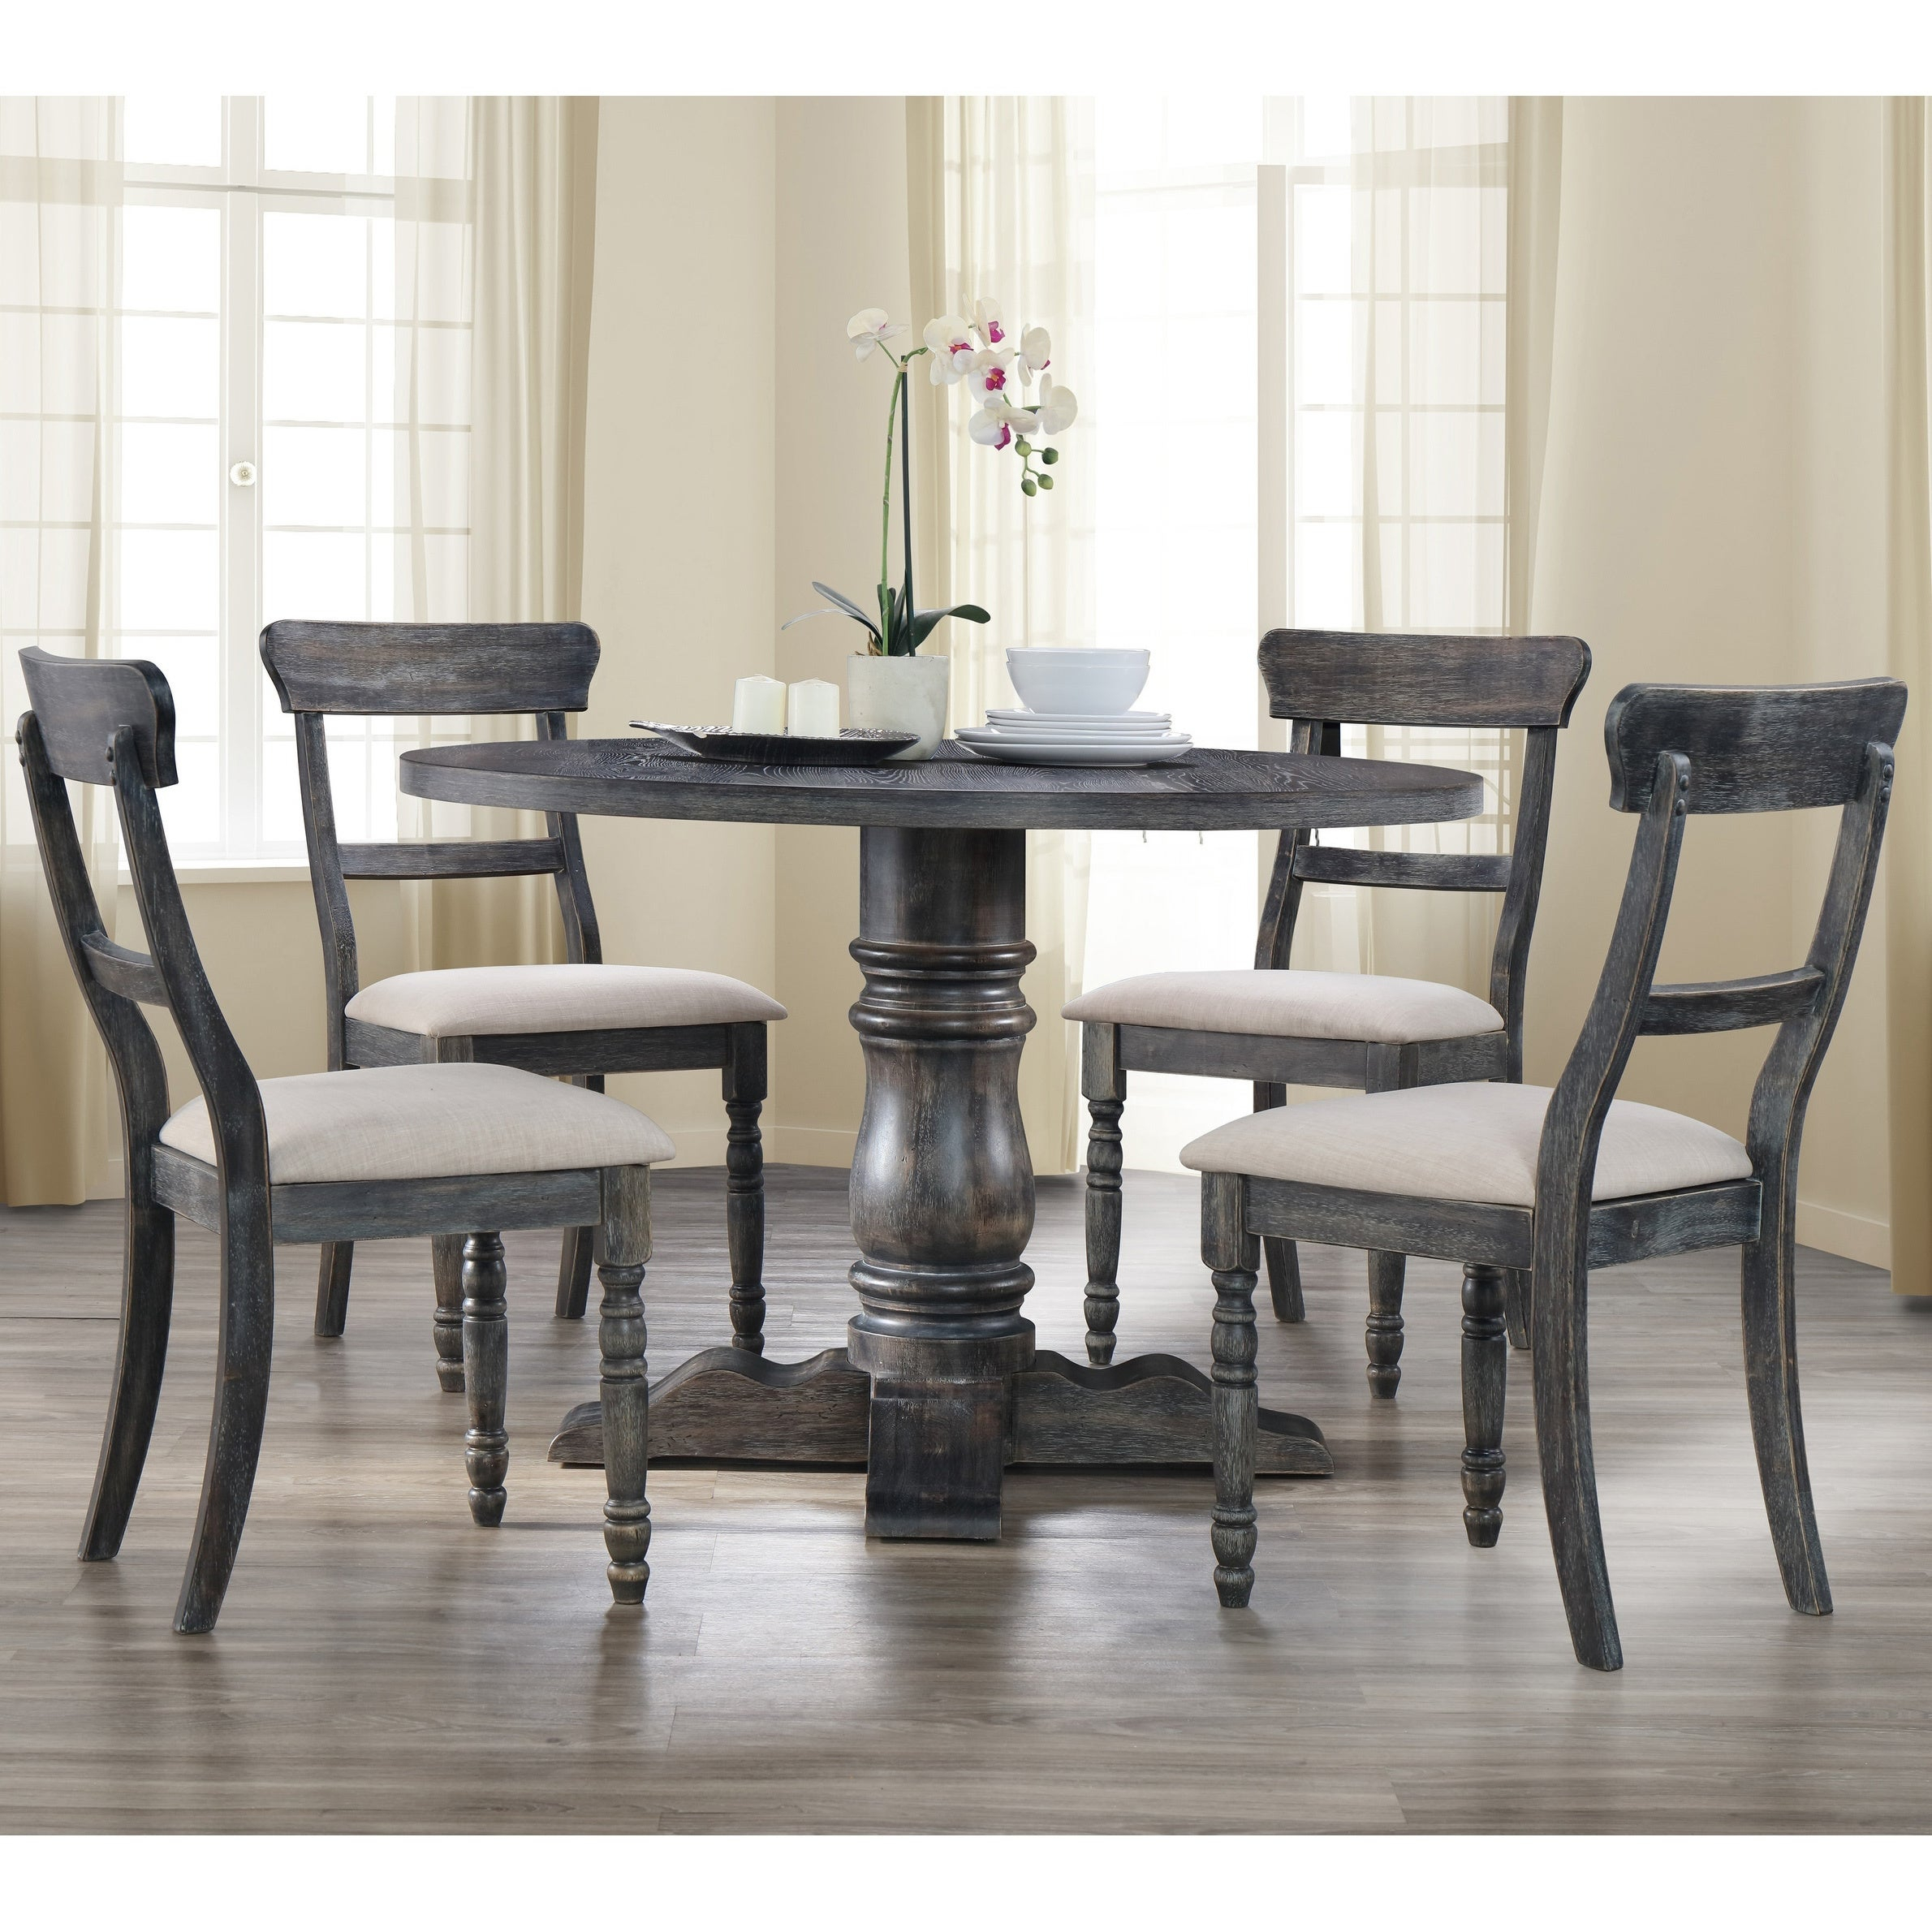 Best Master Furniture Weathered Grey 5 Pcs Dinette Set Throughout Most Recent Debby Small Space 3 Piece Dining Sets (View 10 of 20)